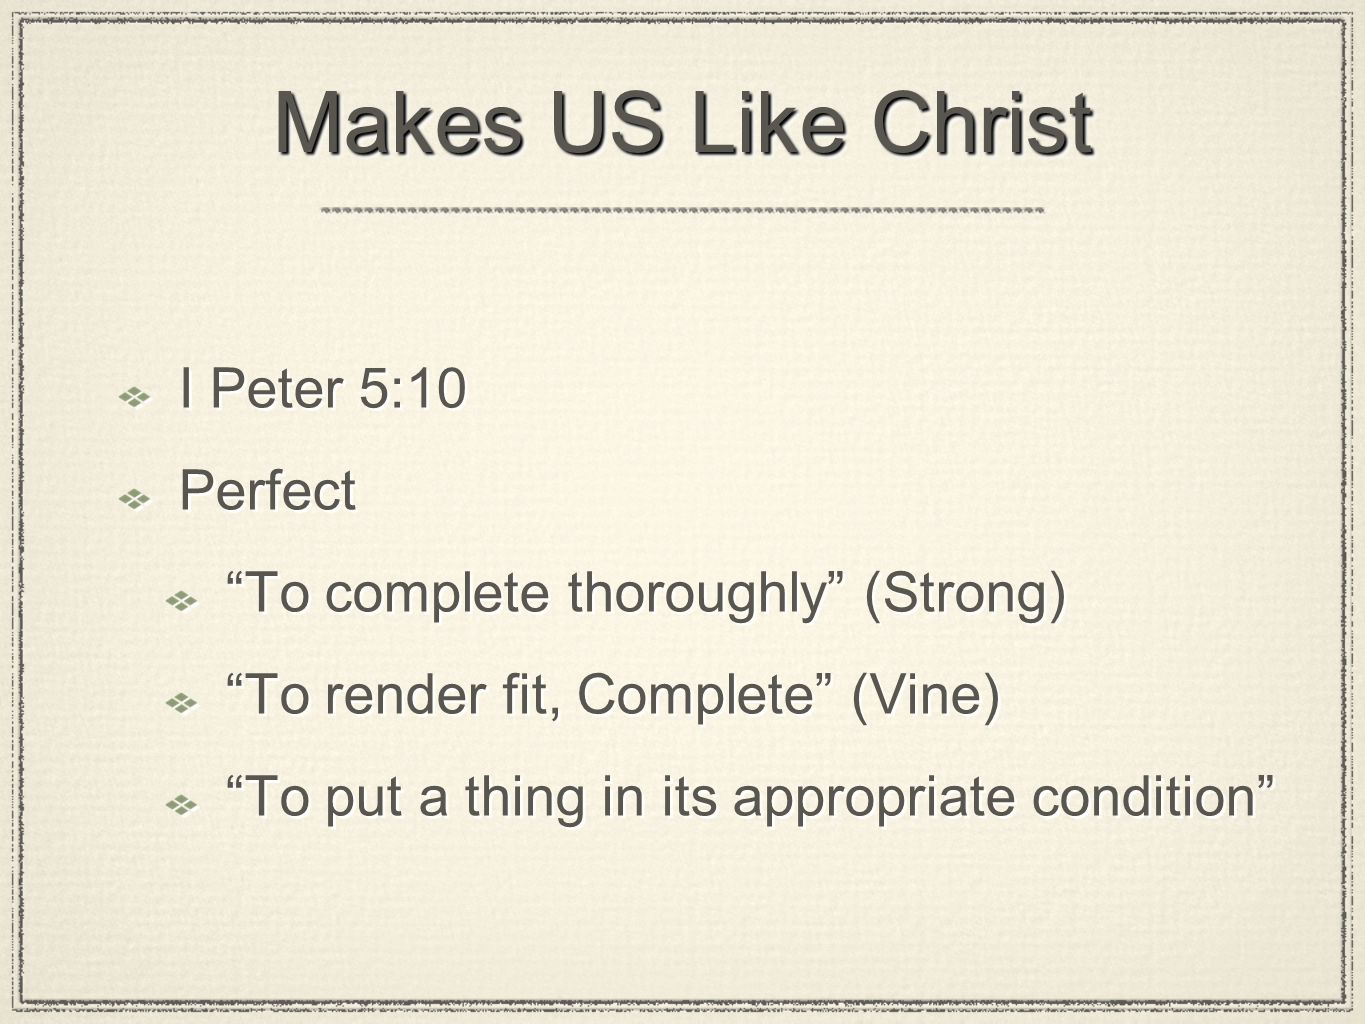 Makes US Like Christ I Peter 5:10 Perfect To complete thoroughly (Strong) To render fit, Complete (Vine) To put a thing in its appropriate condition I Peter 5:10 Perfect To complete thoroughly (Strong) To render fit, Complete (Vine) To put a thing in its appropriate condition